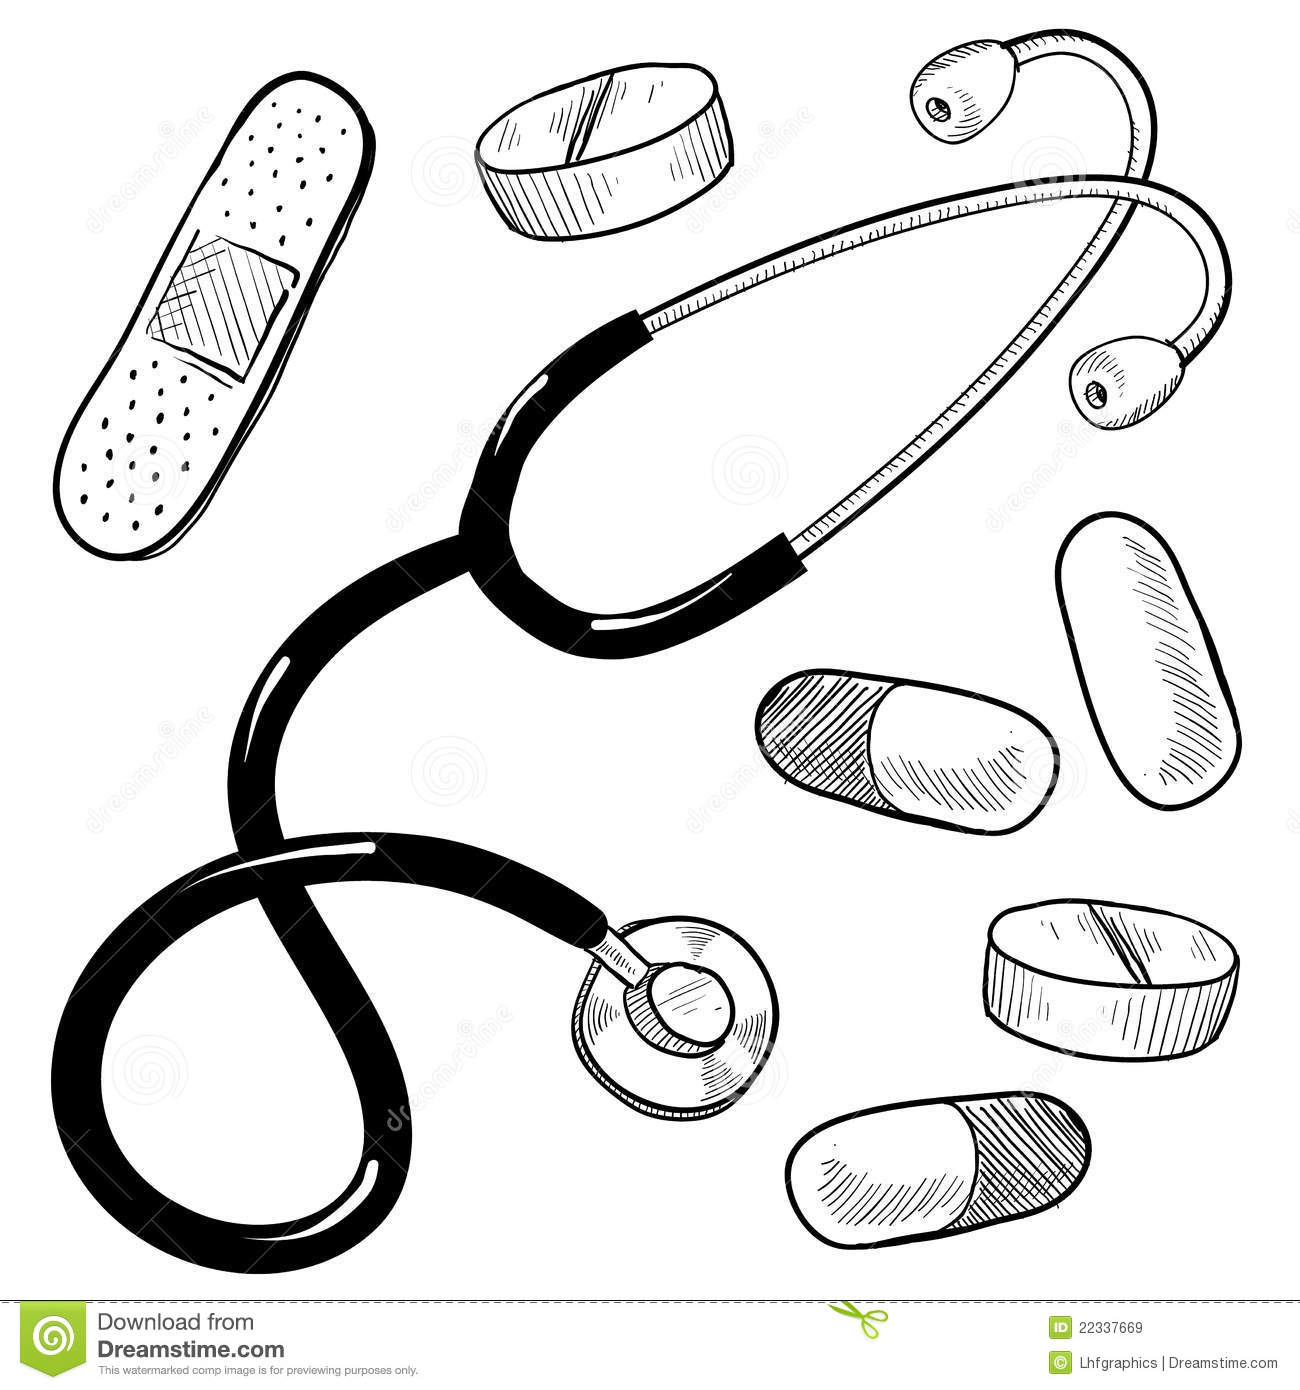 Doctor S Equipment Sketch 22337669 Doctor S Equipment Sketch Royalty Free Stock Images Image 22337669 On Home